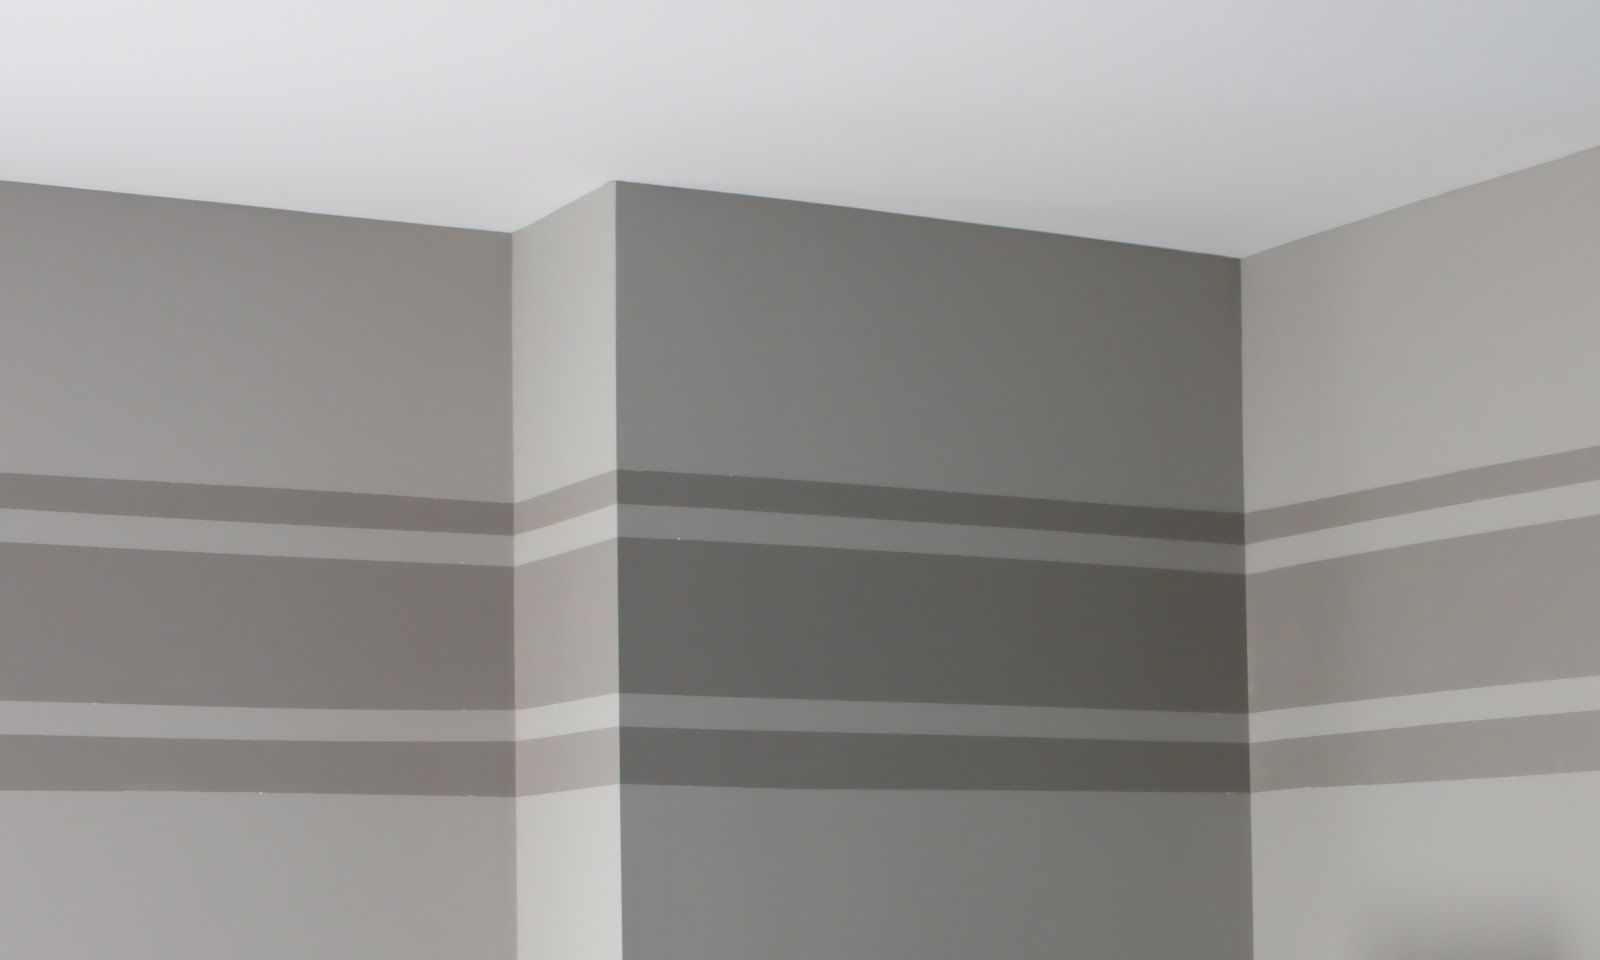 Horizontal Stripe On Wall First I Had The Room Painted With Base Color Allowed It To